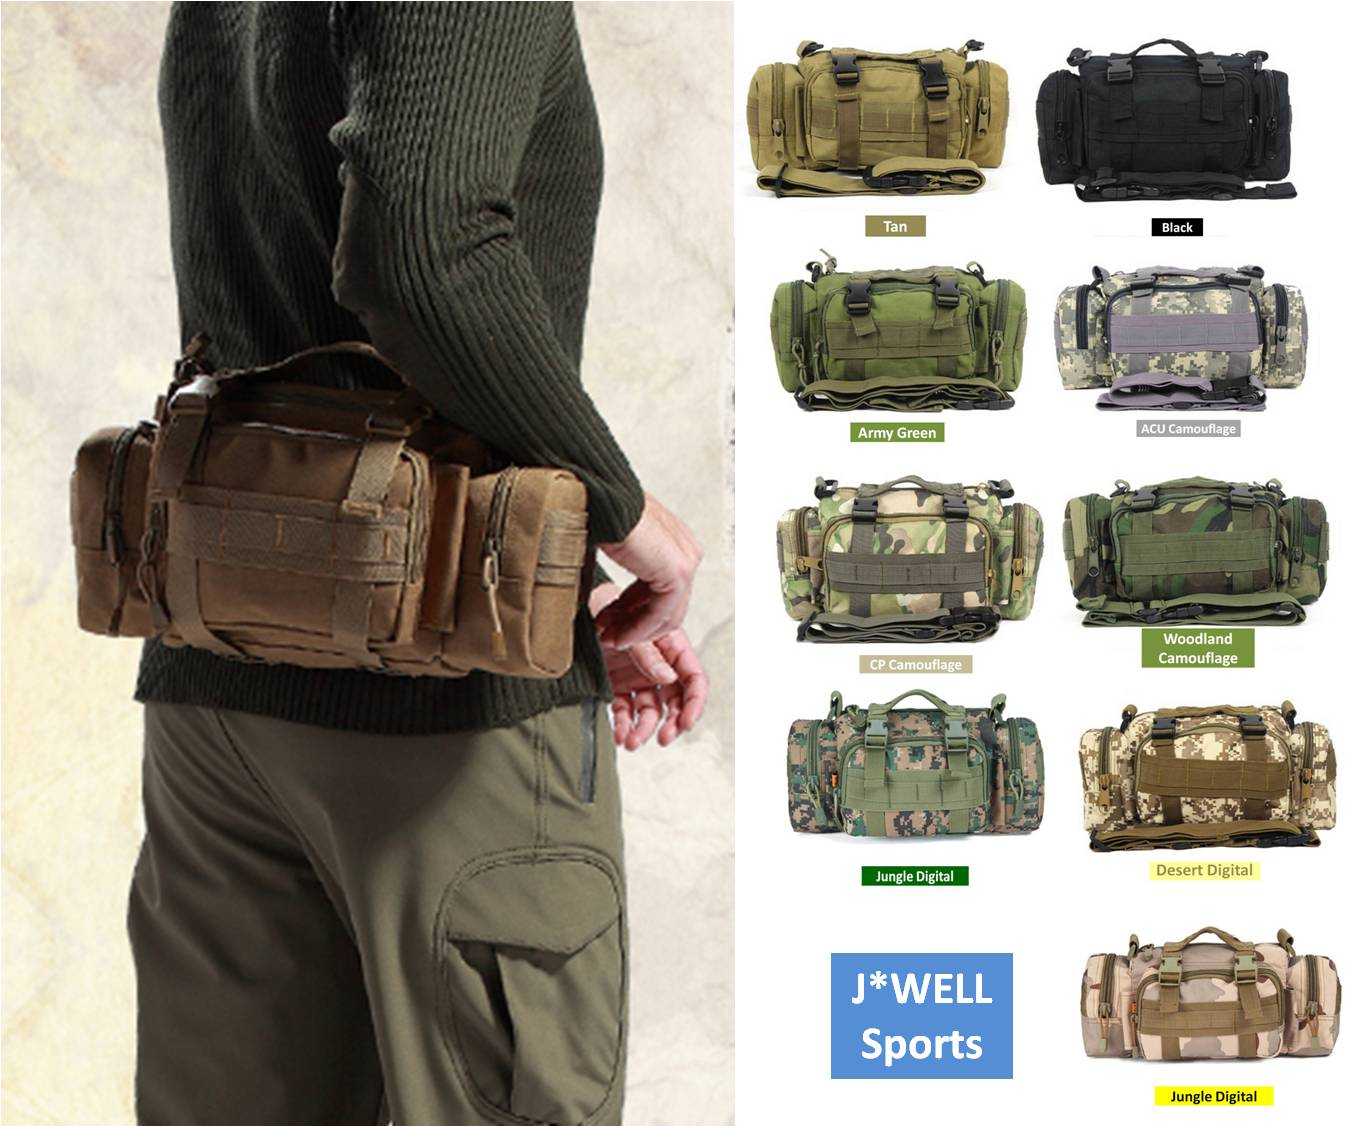 3P Utility Military Tactical Waist Mountain Bicycle Bike Cycling Assault Camping Hiking Outdoor Belt Pouch Backpack Shoulder Bag - J-WELL store